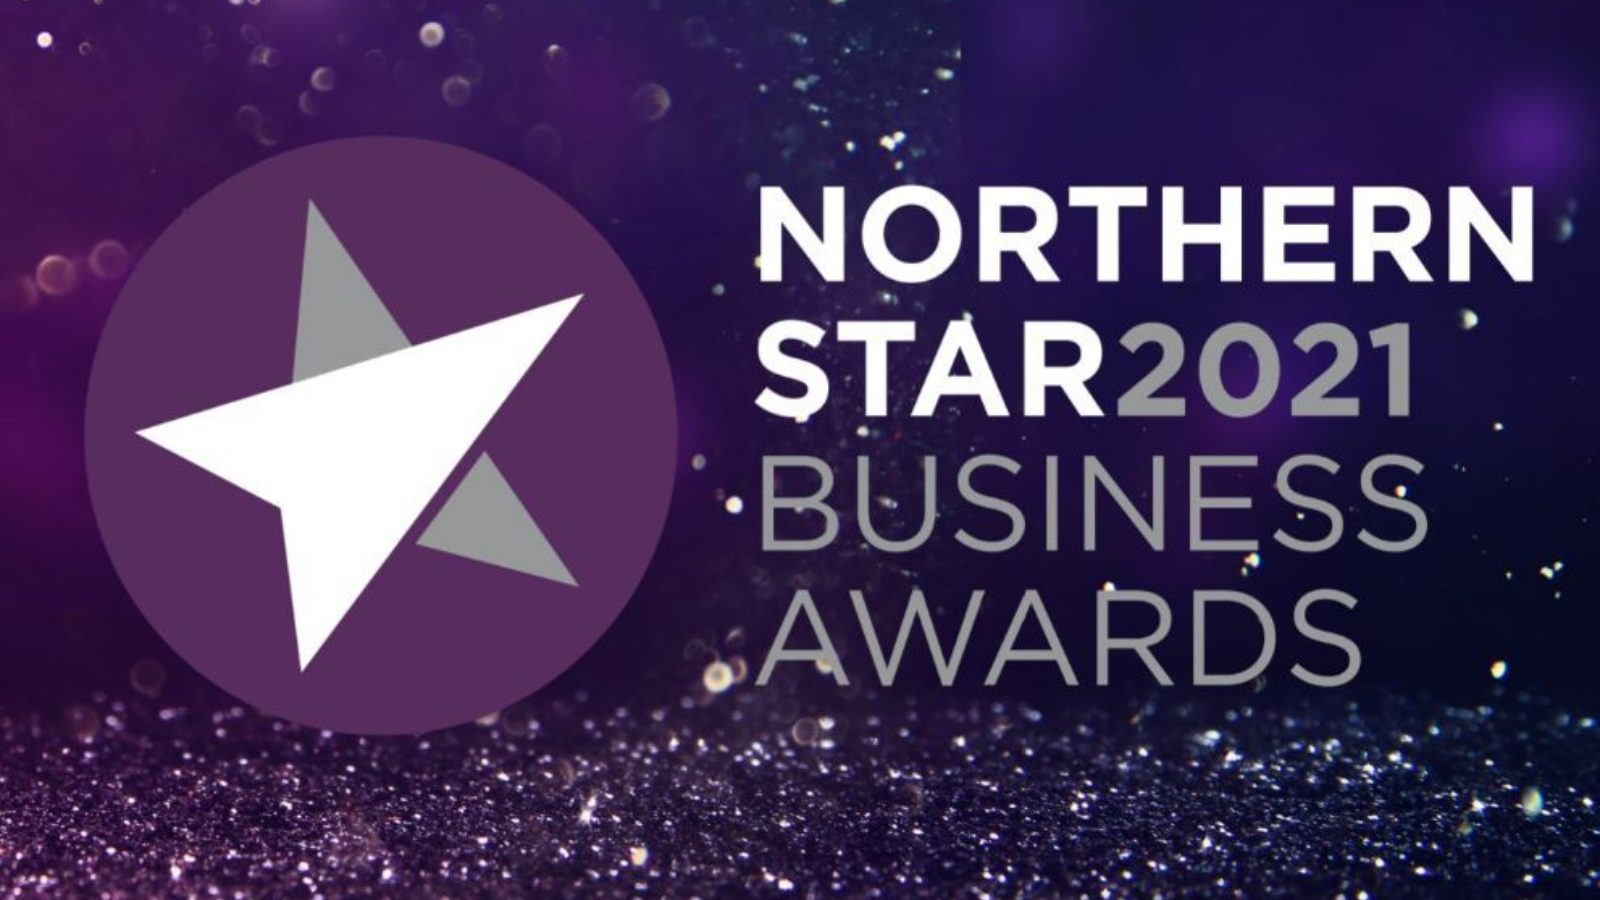 Network with leaders and influencers from across the North-east business community by securing your table at the 2021 Awards black tie event.